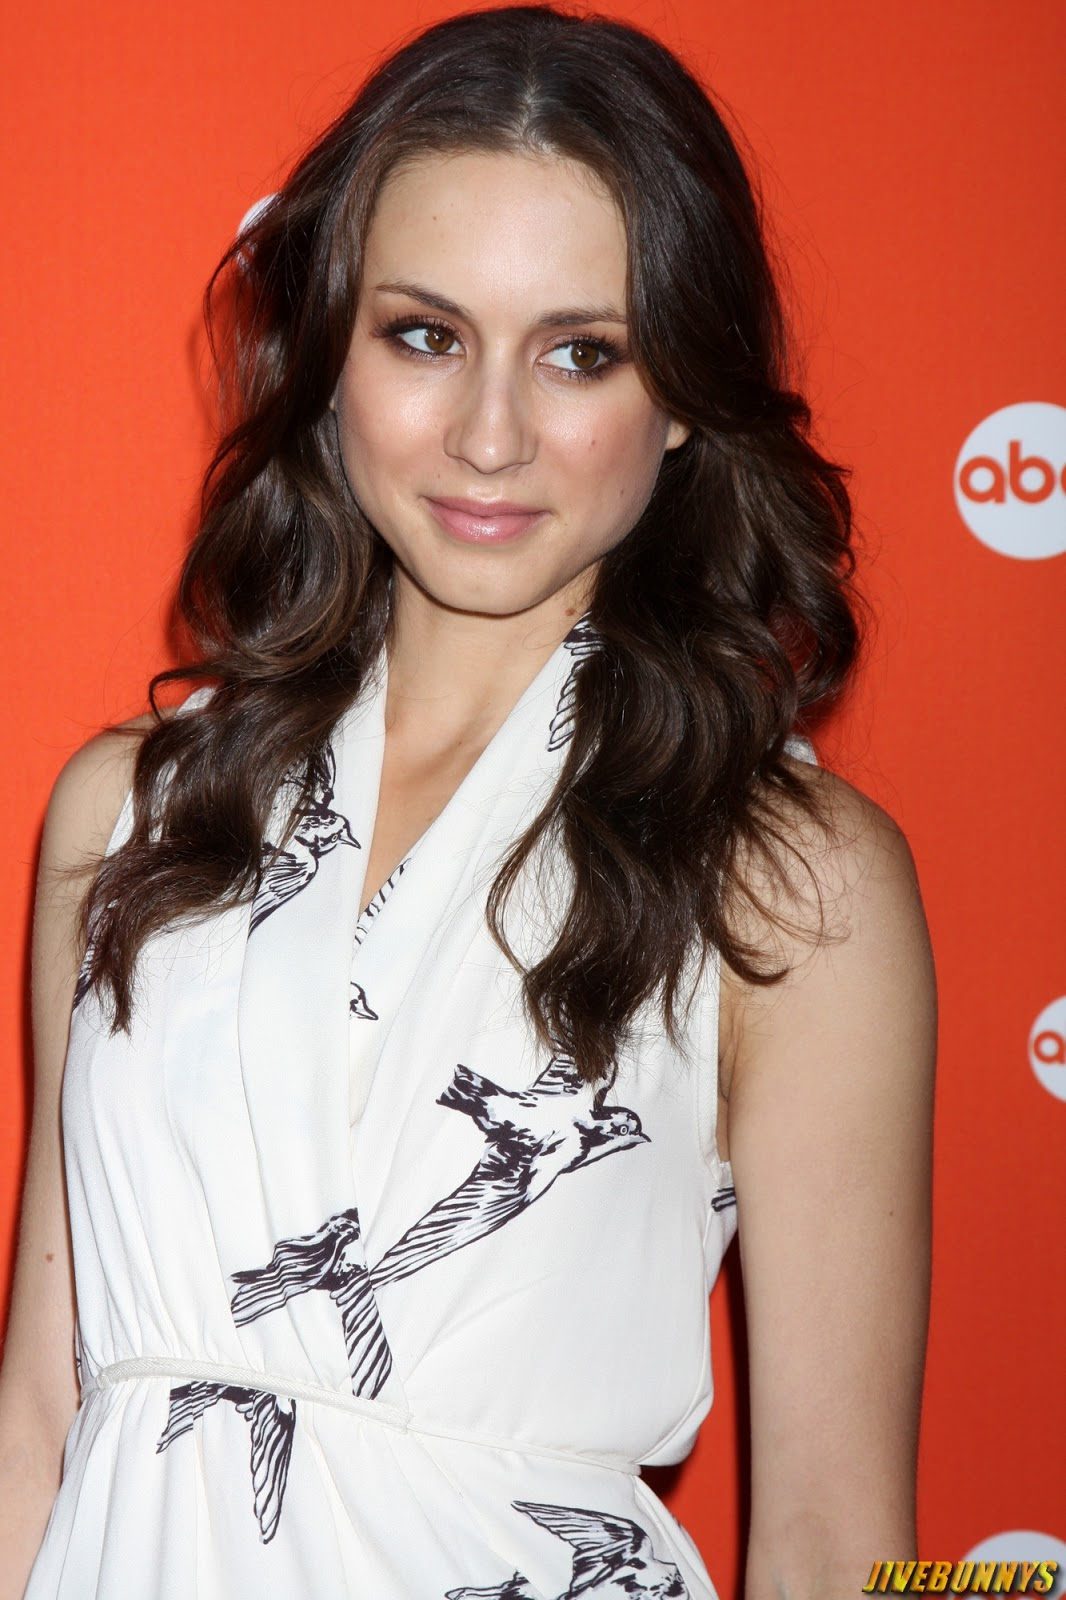 Troian bellisario in billboard dad